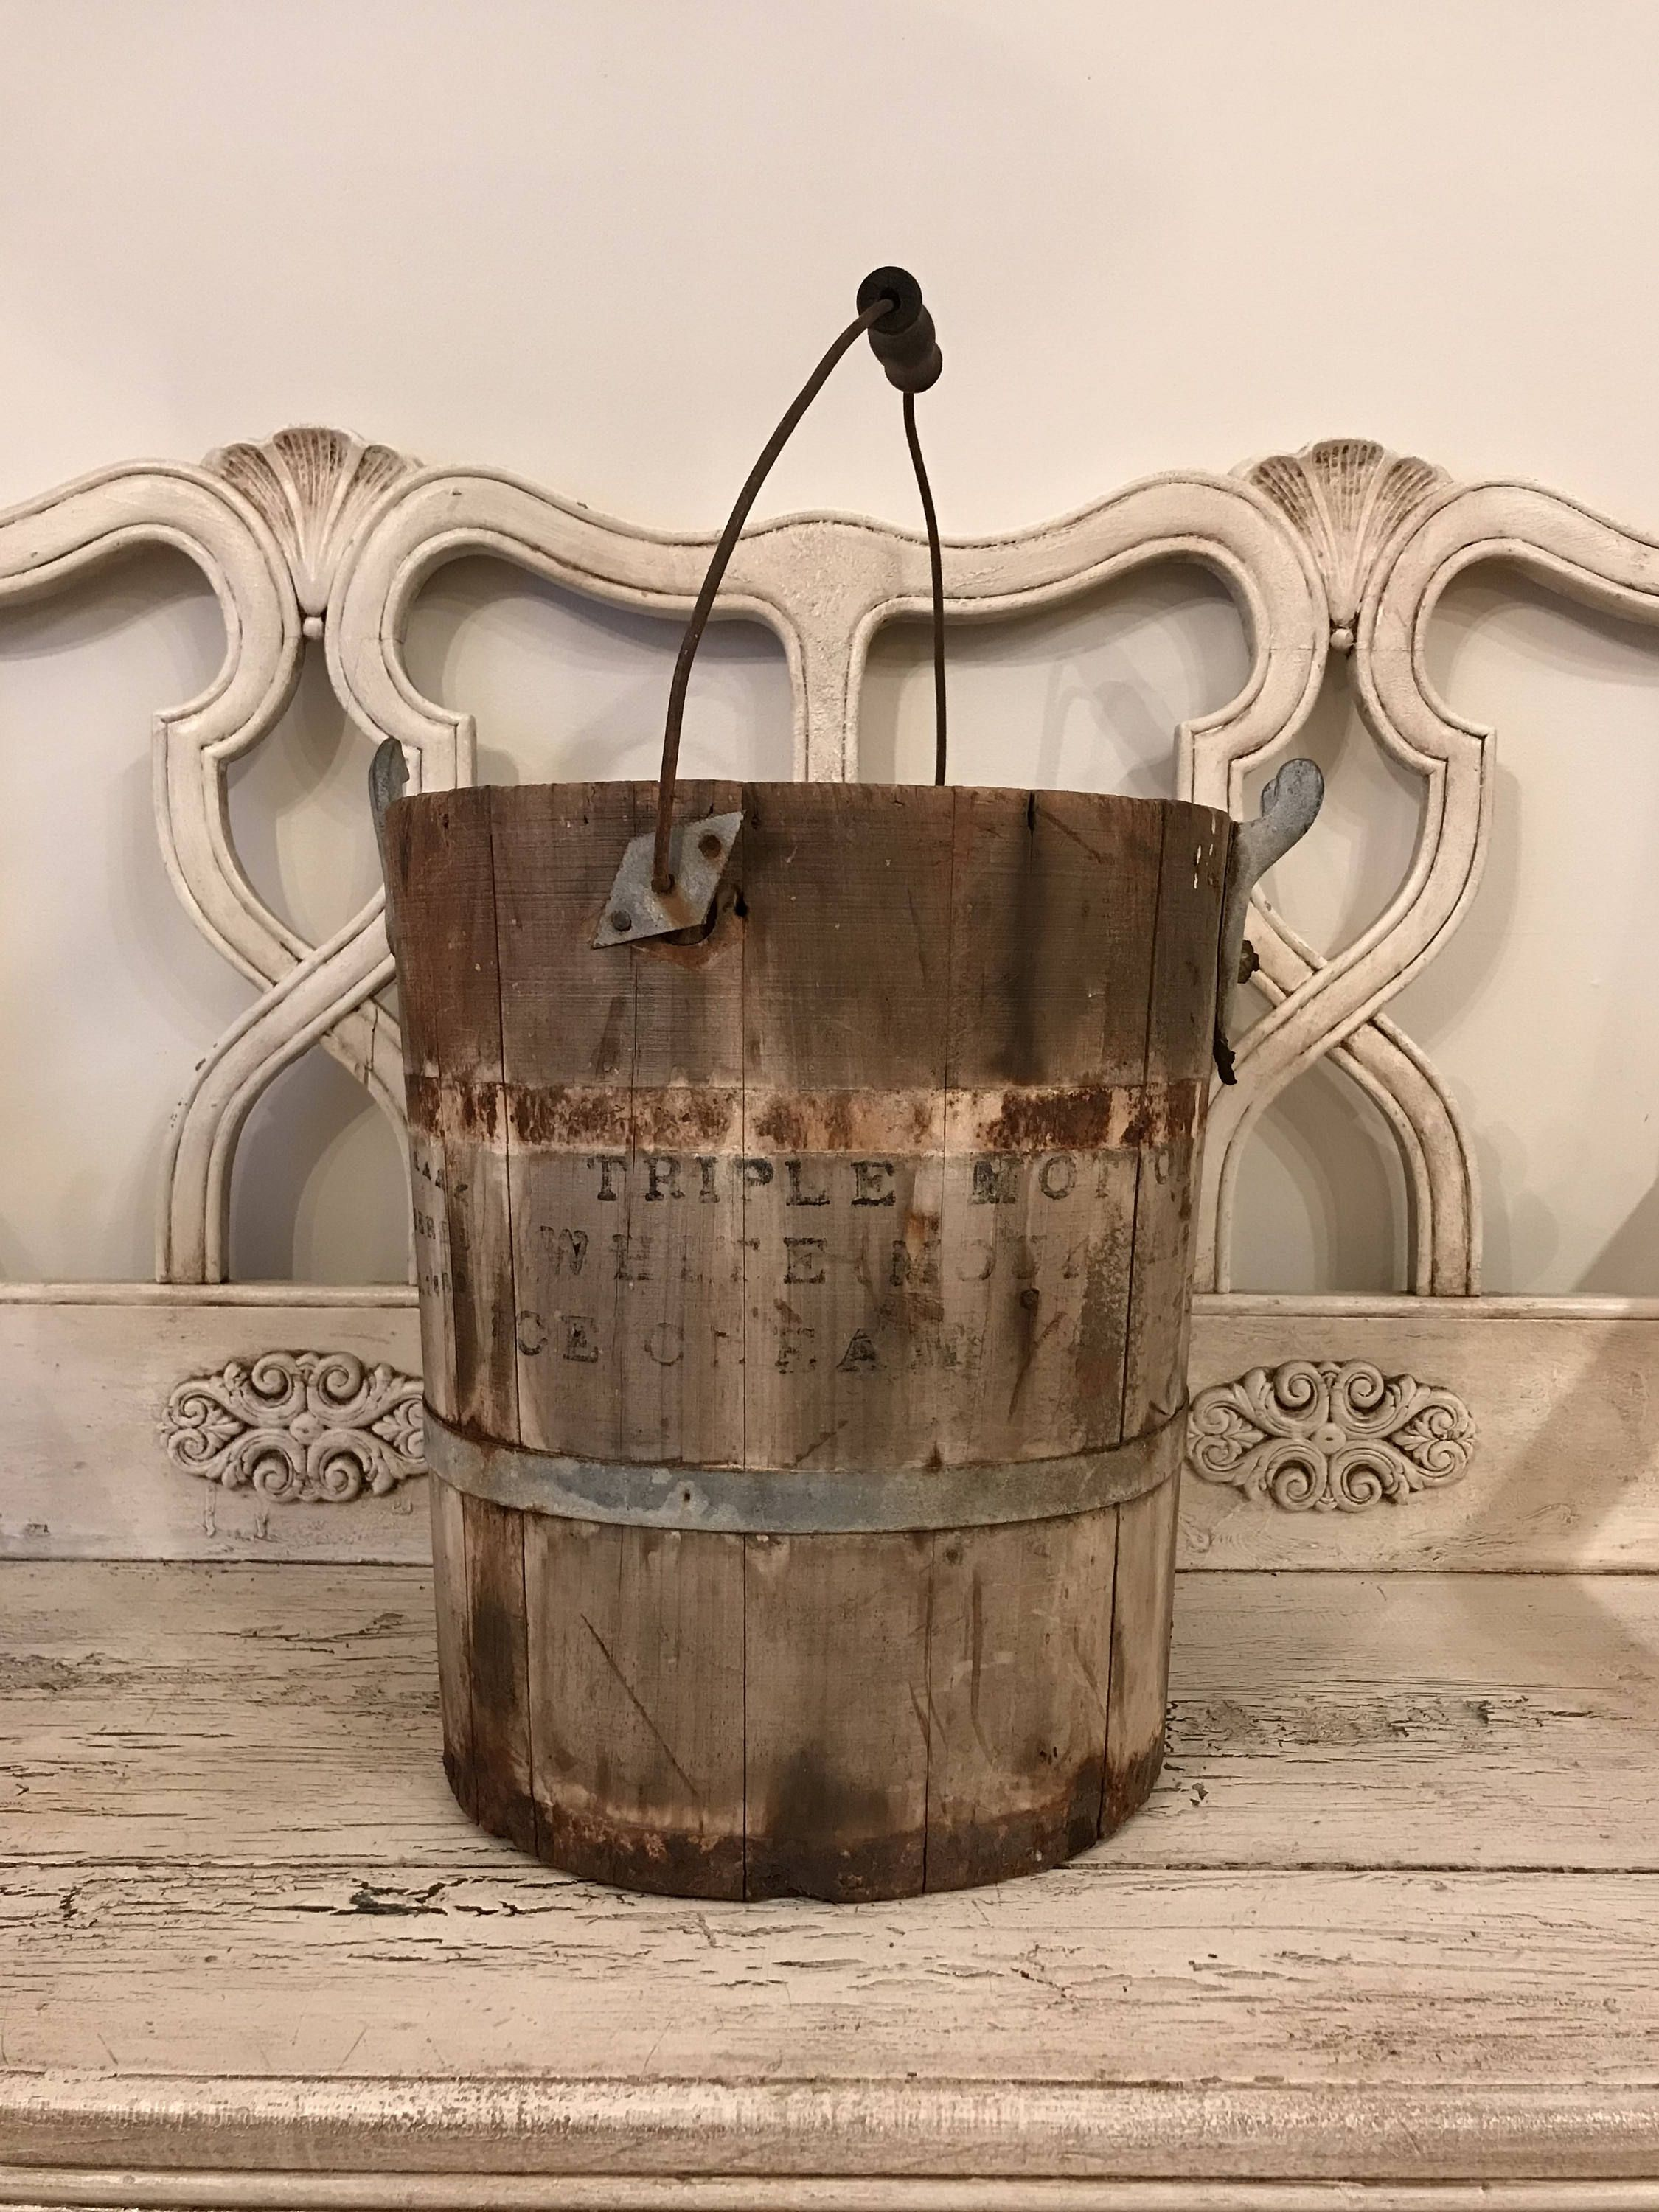 Vintage Ice Cream Maker Late 1800s Rustic, Farmhouse